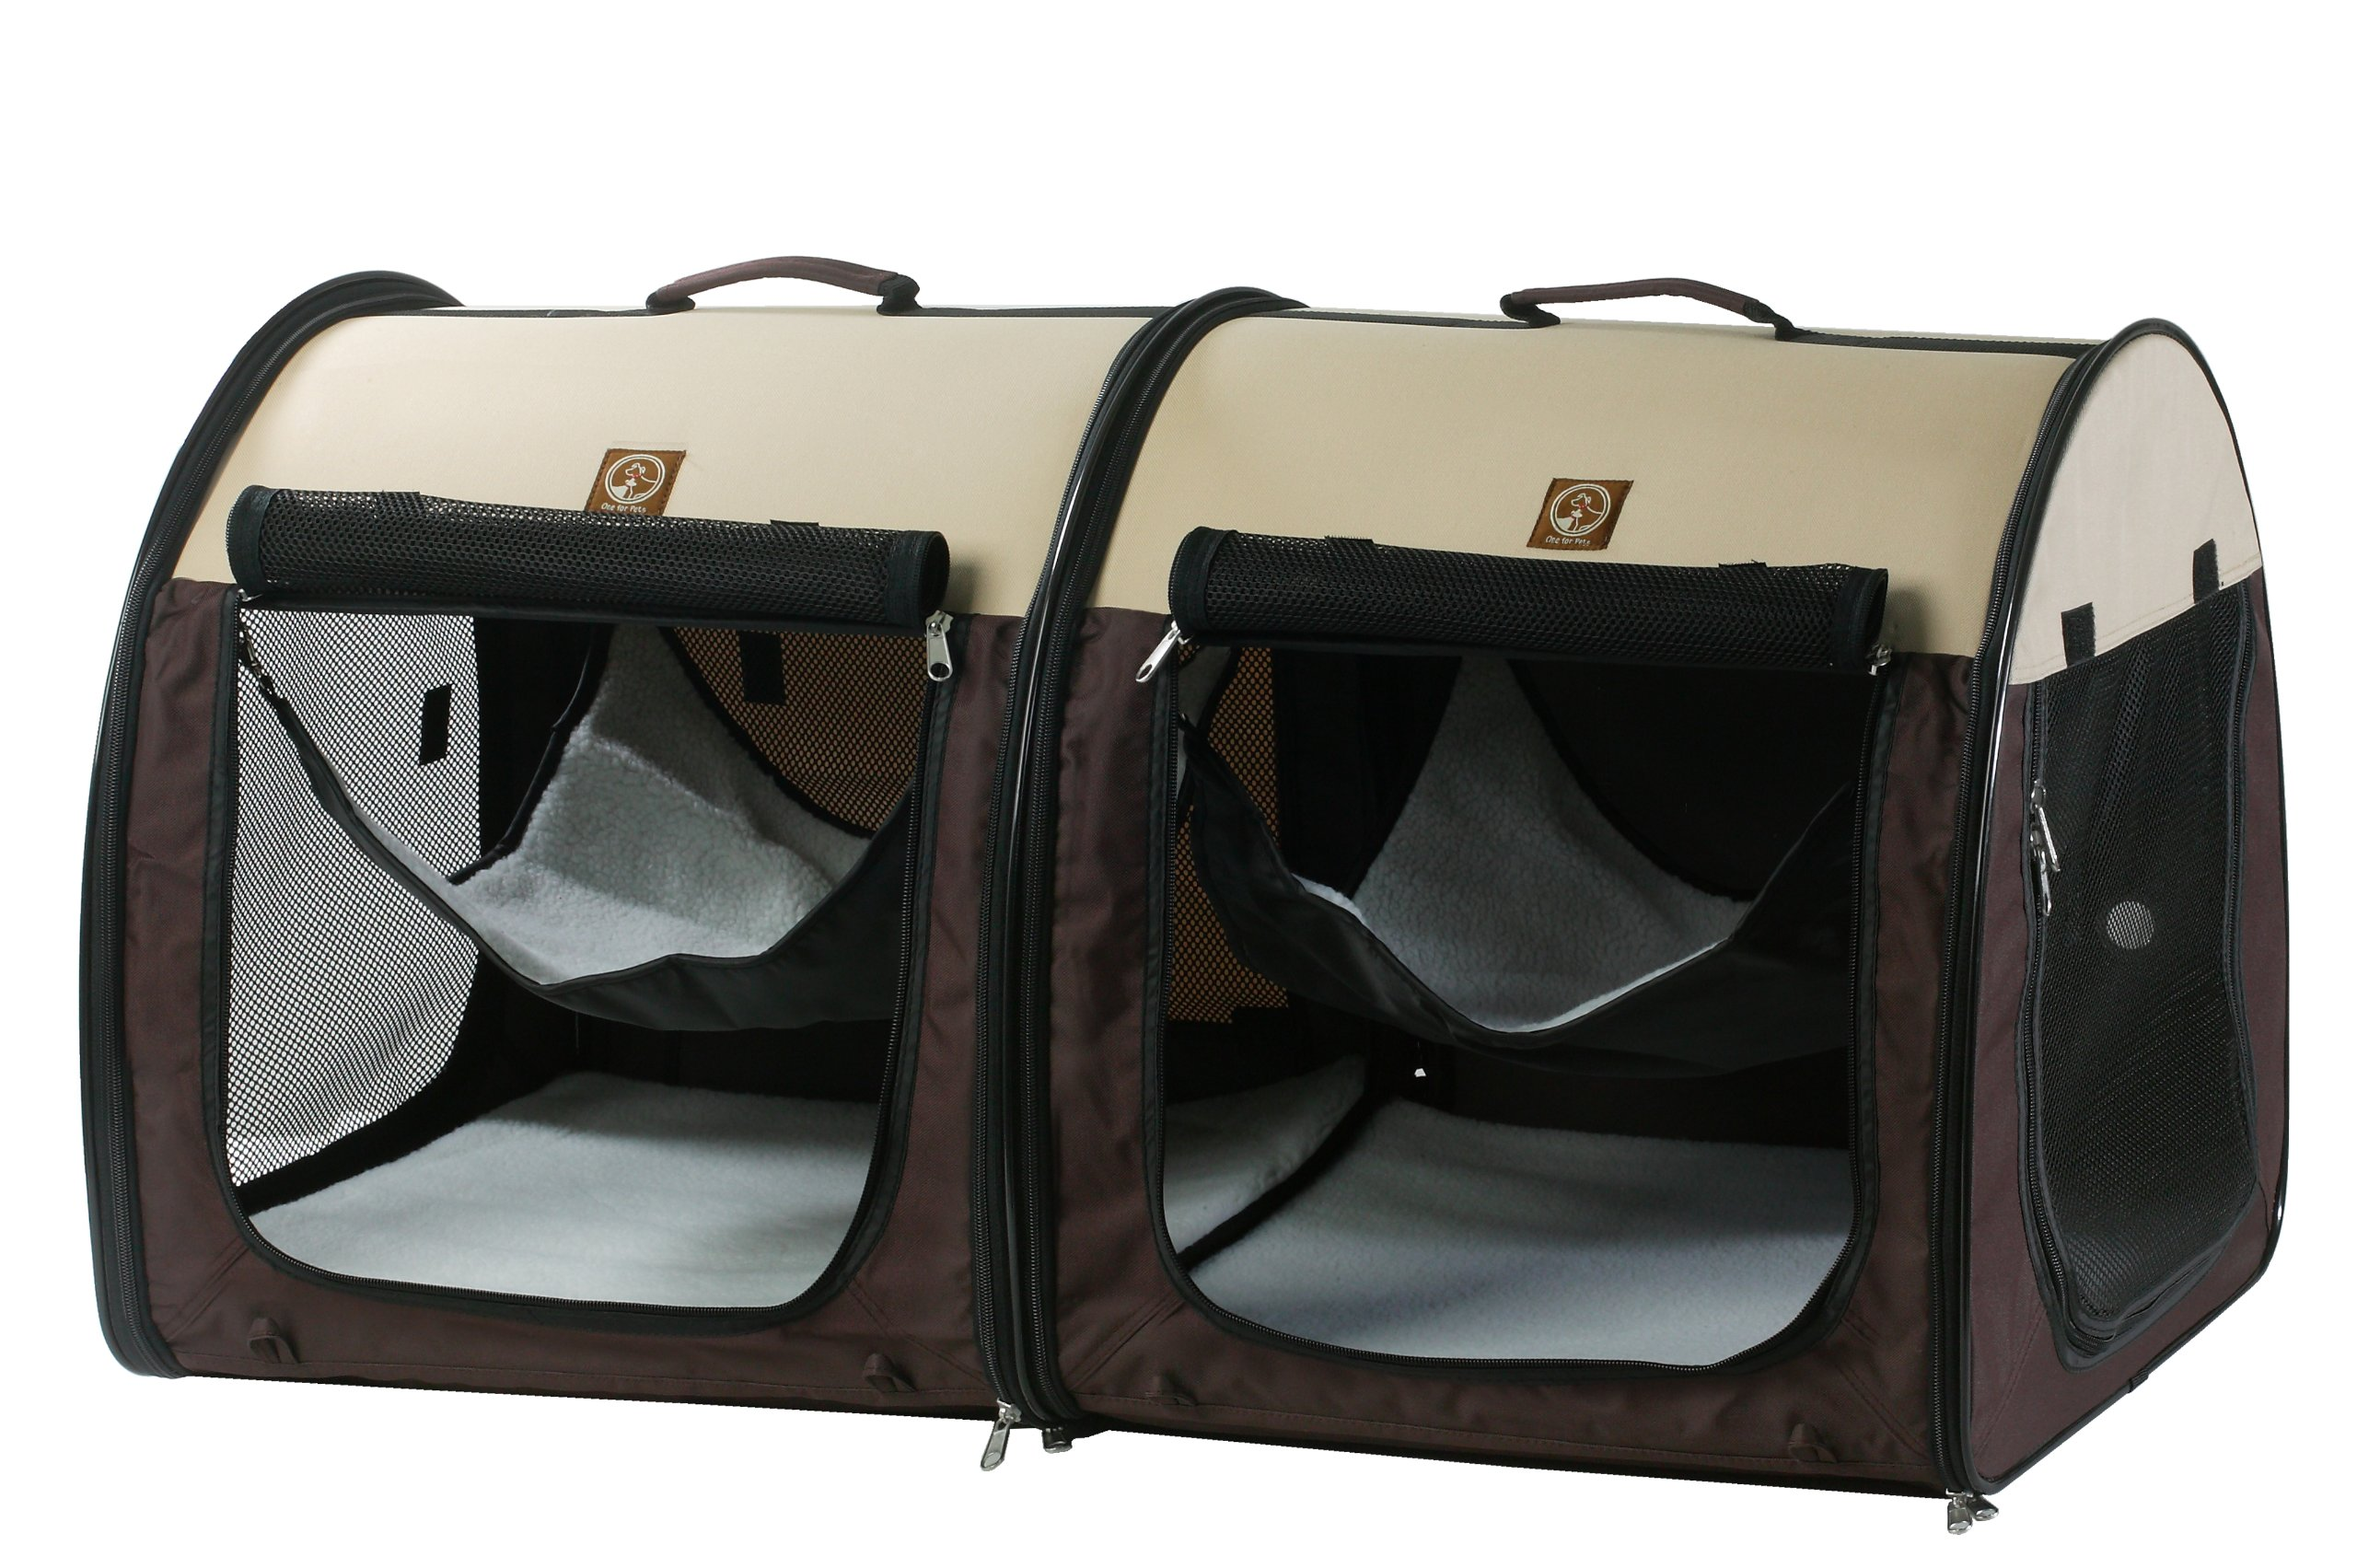 One for Pets Fabric Portable Dog Cat Kennel Shelter, Double, Cream/Brown - Travel Carrier, Double Portable Hammock, 20''X20''X3.9 by One for Pets